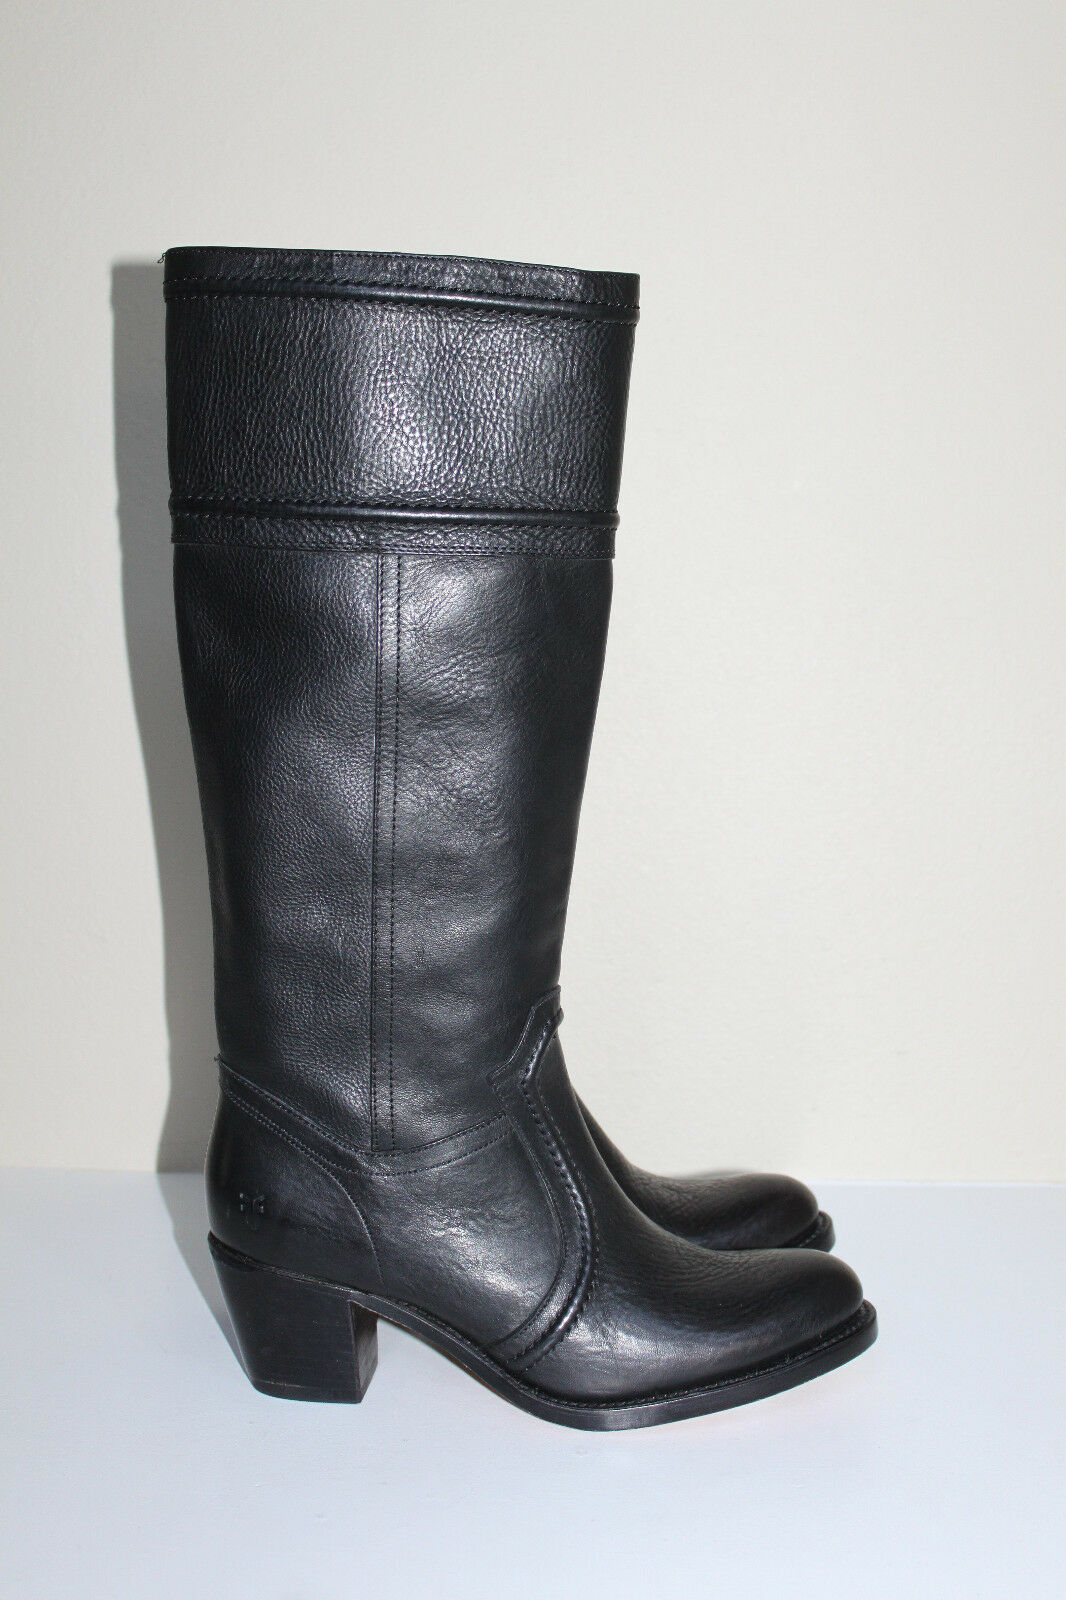 New sz 9.5 Frye Jane 14 Black Leather Riding Tall Pull On Boot Heel Shoes